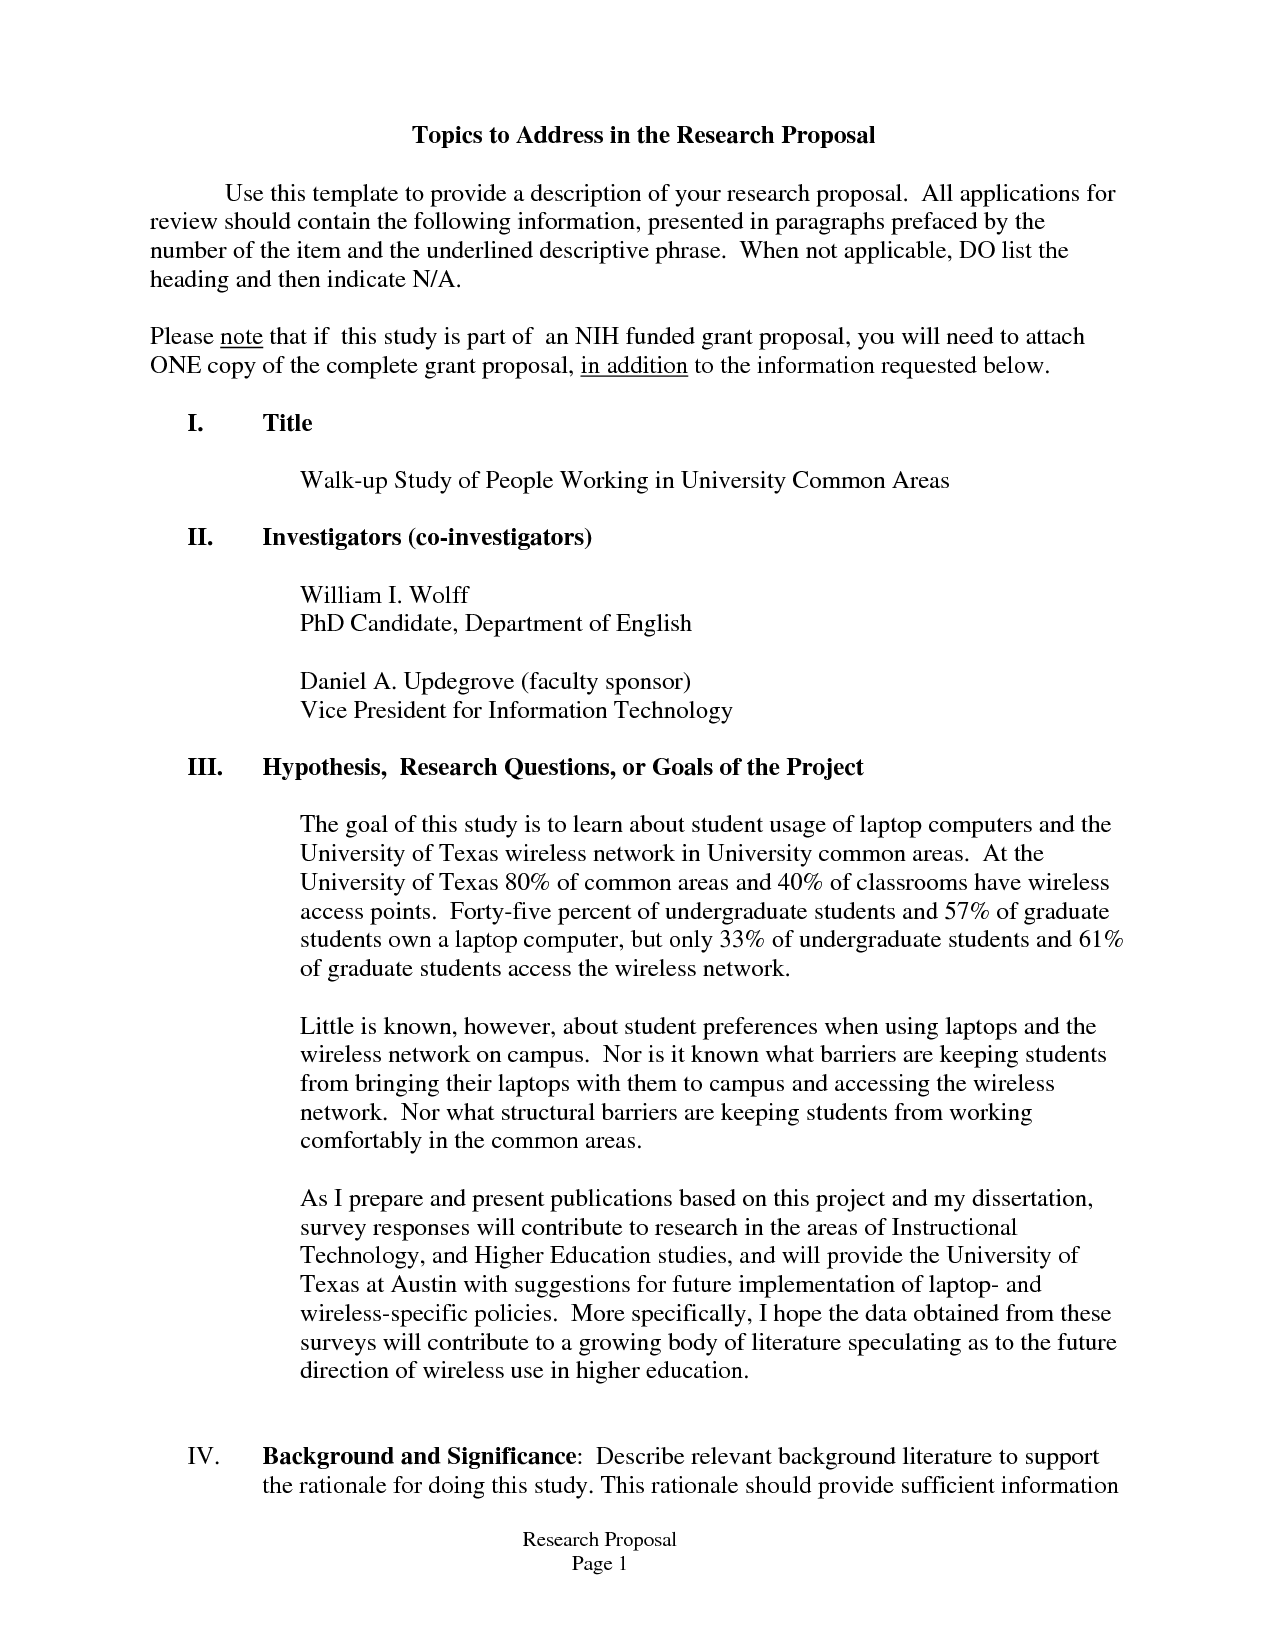 Thesis Statement For Analytical Essay  Topics Of Research Proposal  Simple Essays For High School Students also English Short Essays   Research Proposal Essay Example   College Essay Help For  Healthy Living Essay